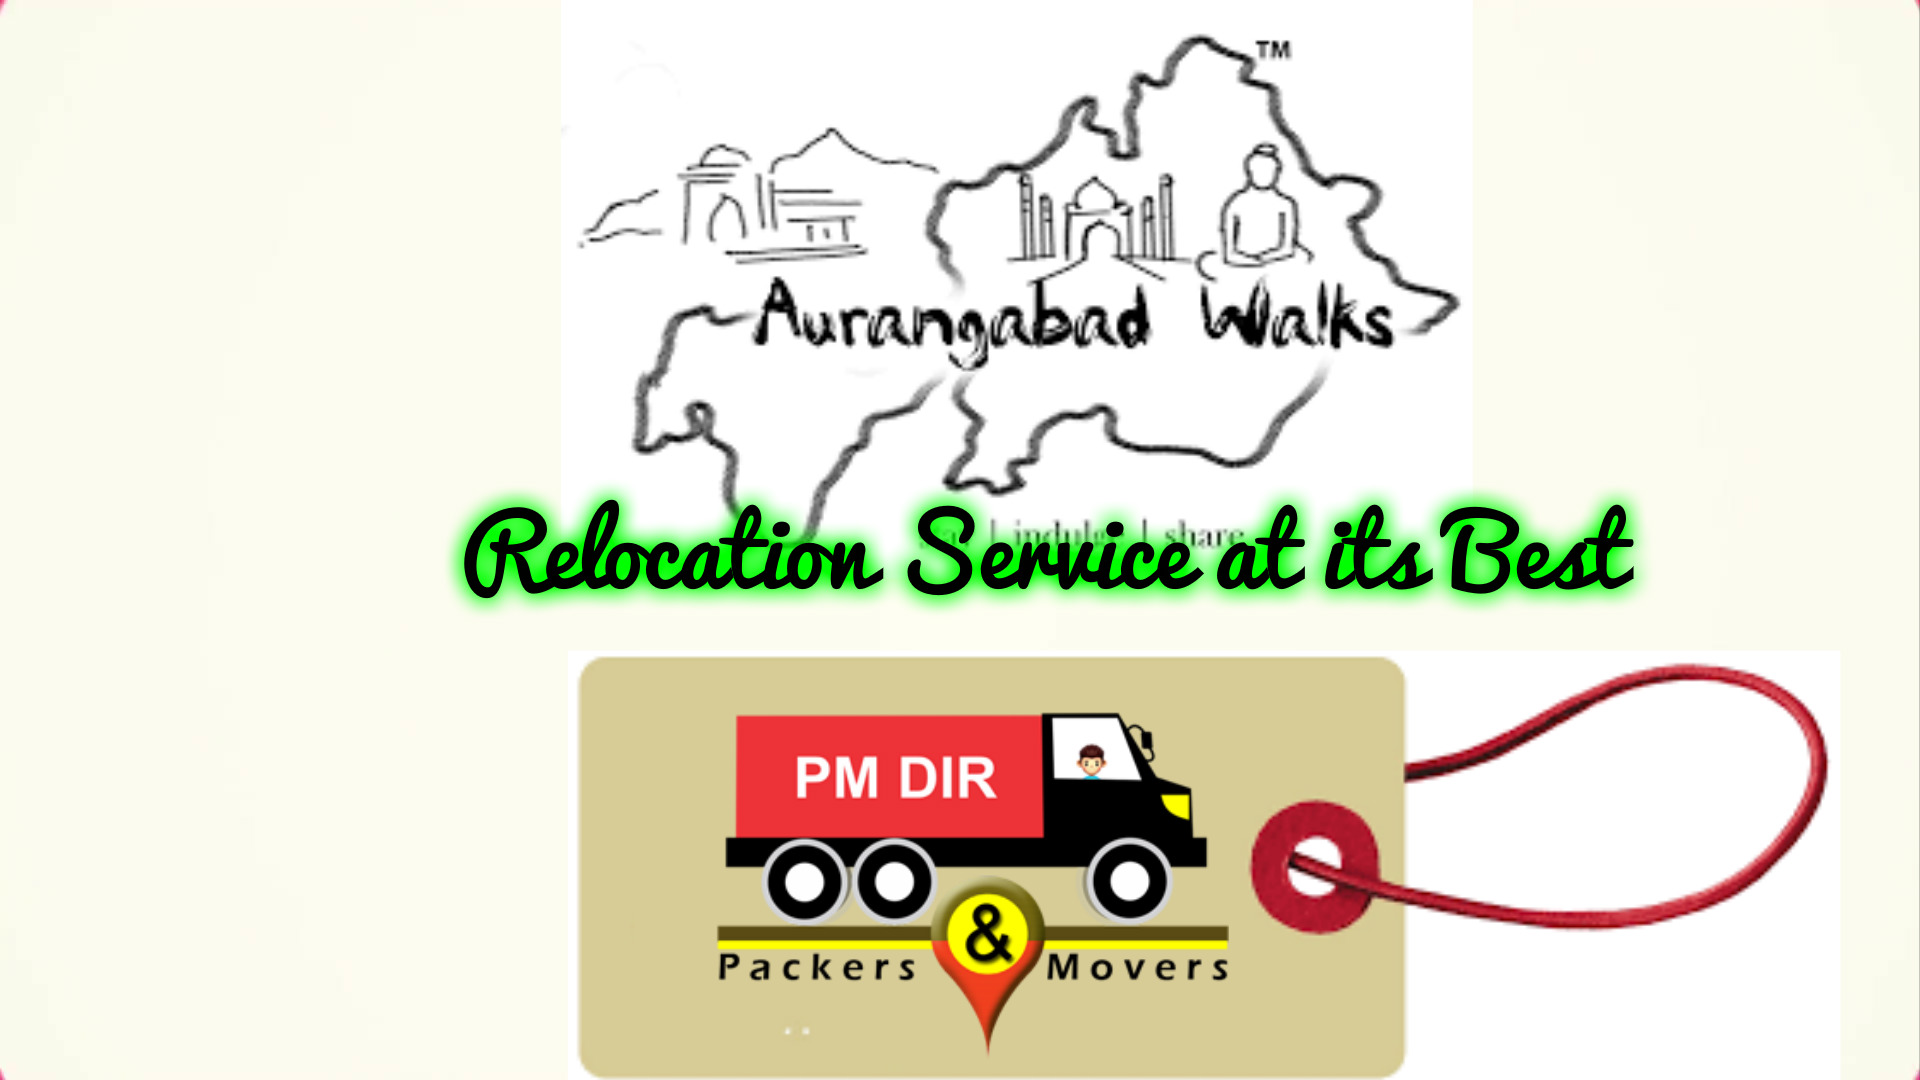 Why Choose PMDIR at the Time of Relocation?